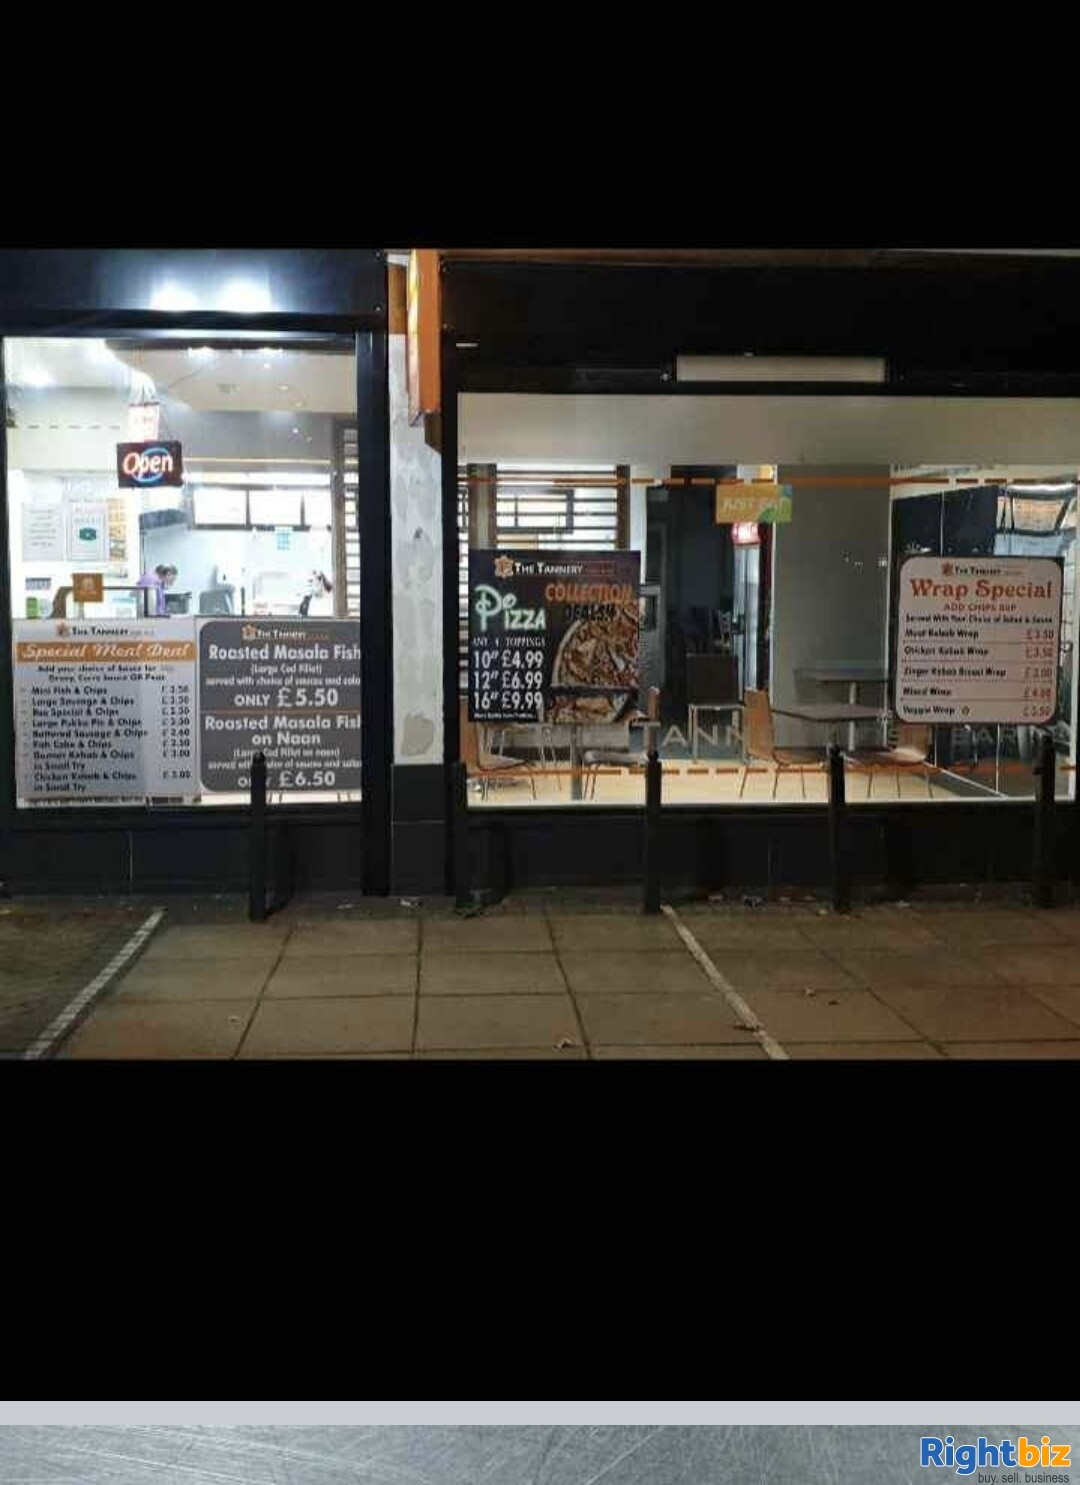 Fish and chips shop business - Image 1